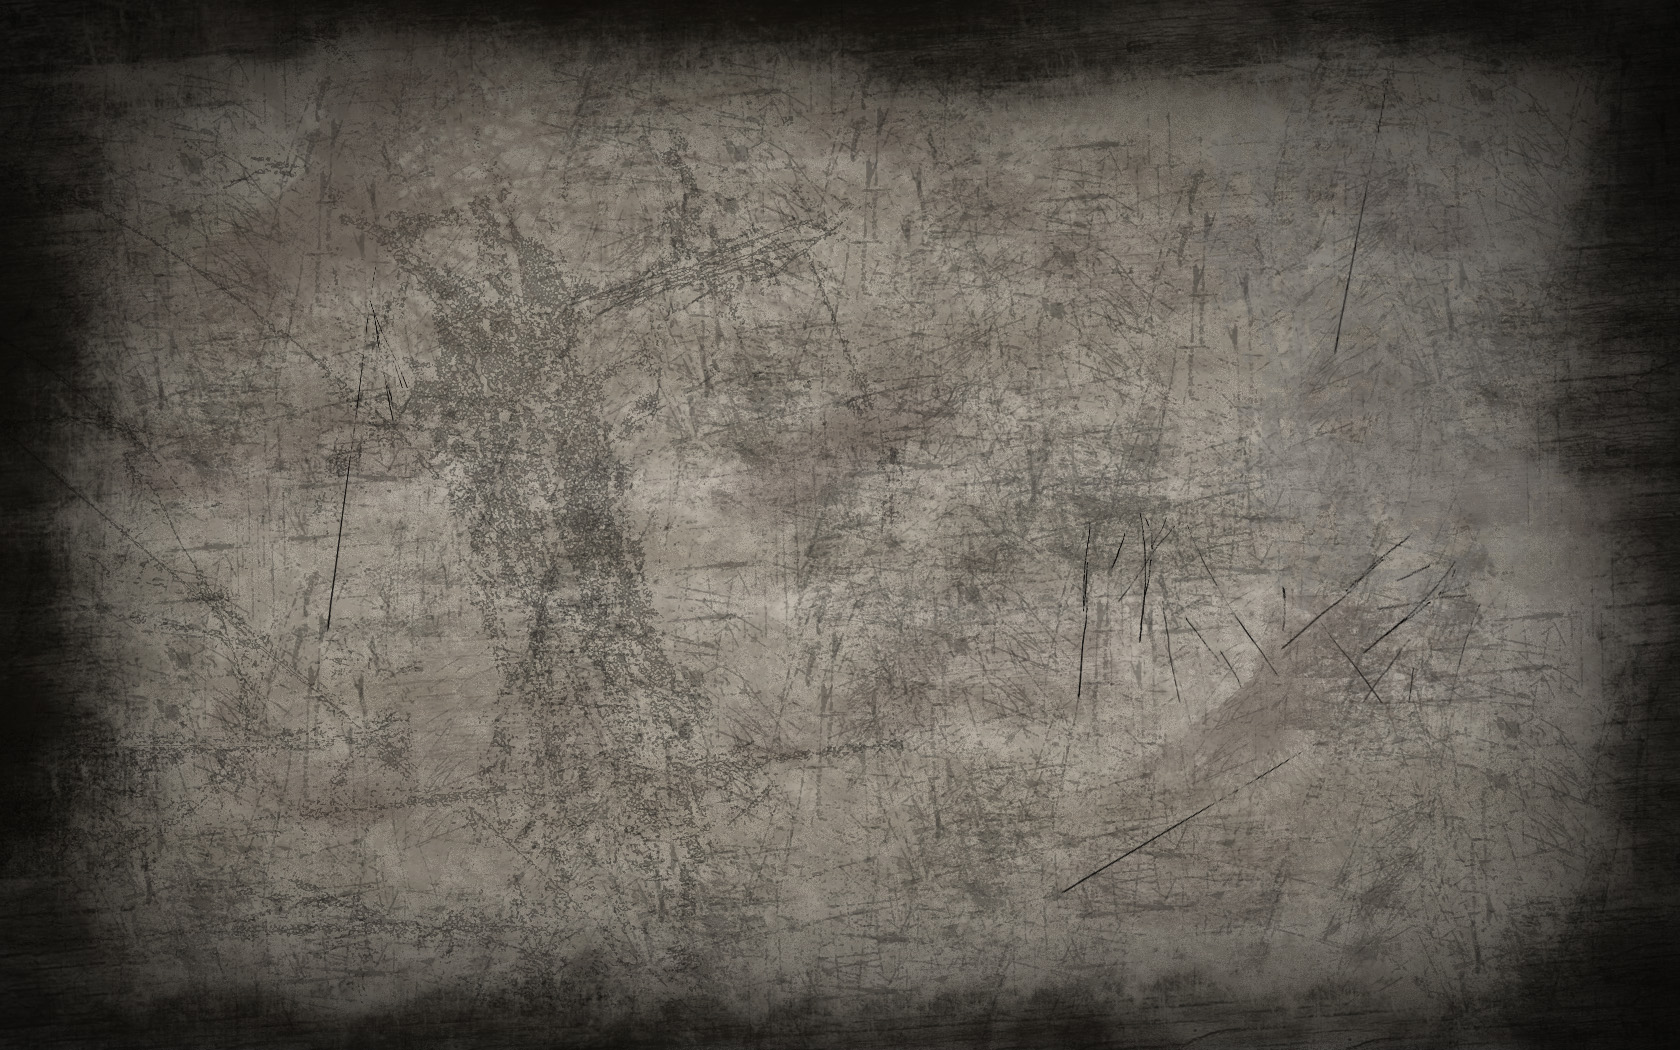 Grunge Texture Grey by f-i-l-p on DeviantArt